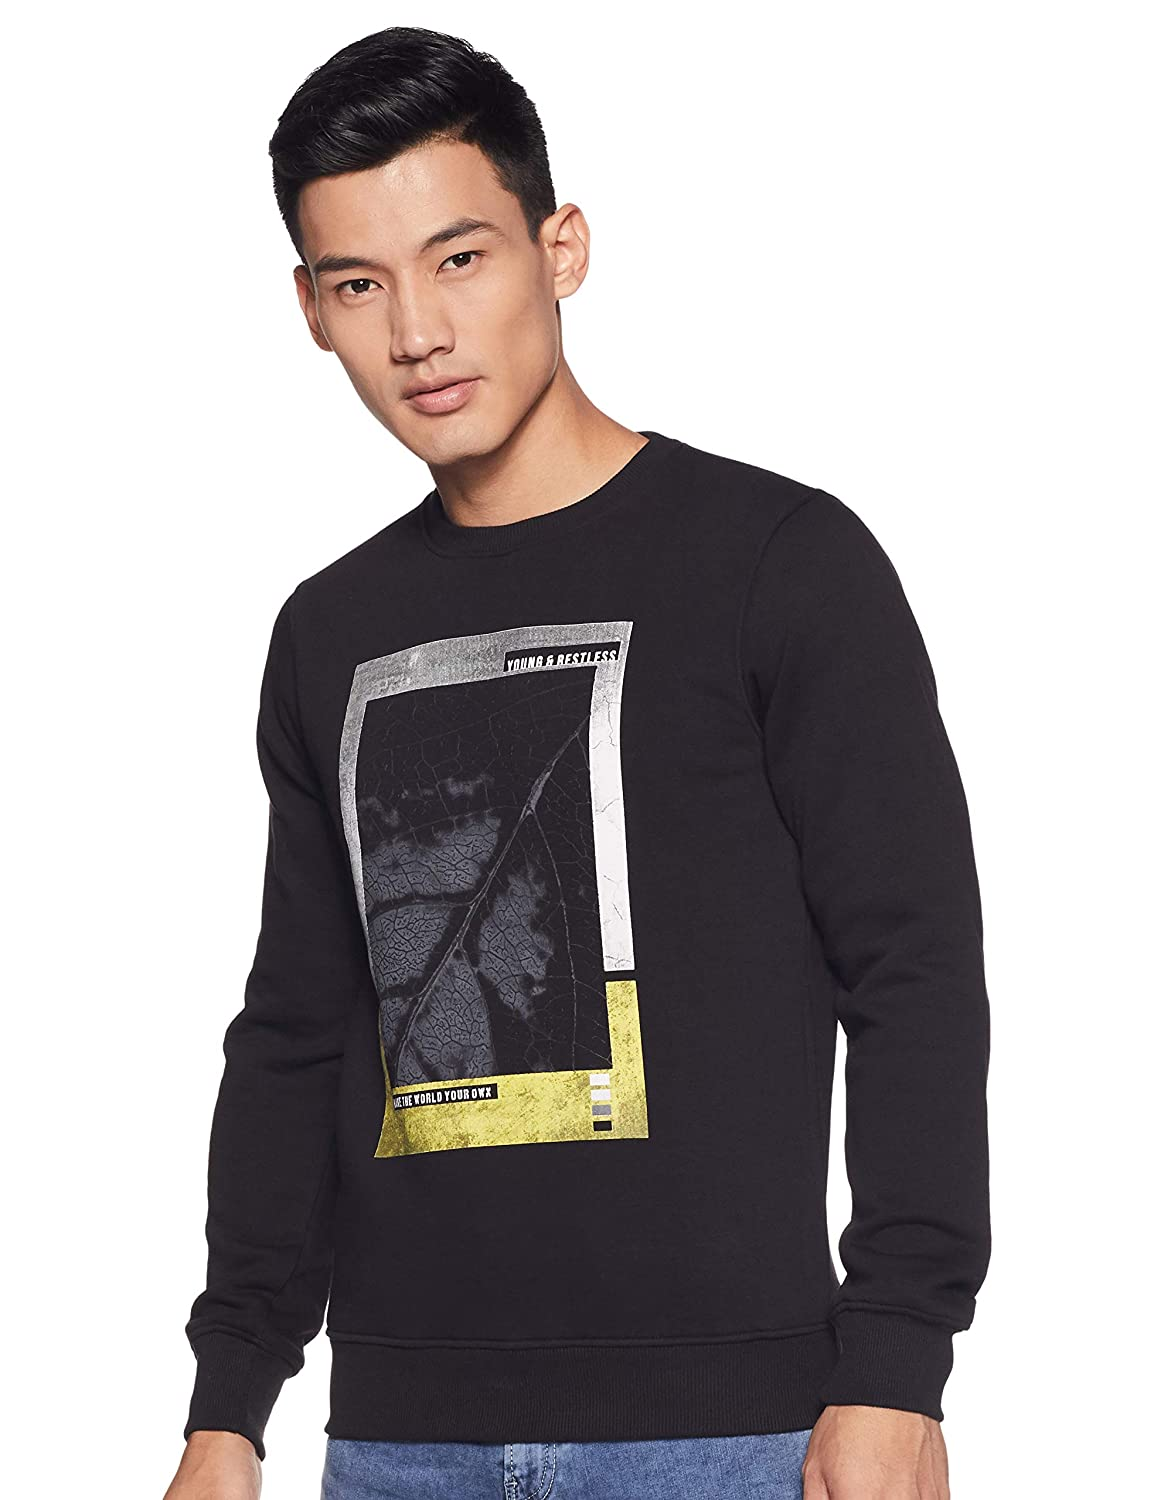 Cazibe Men Sweatshirt up to 80% off From Rs 450  @ Amazon